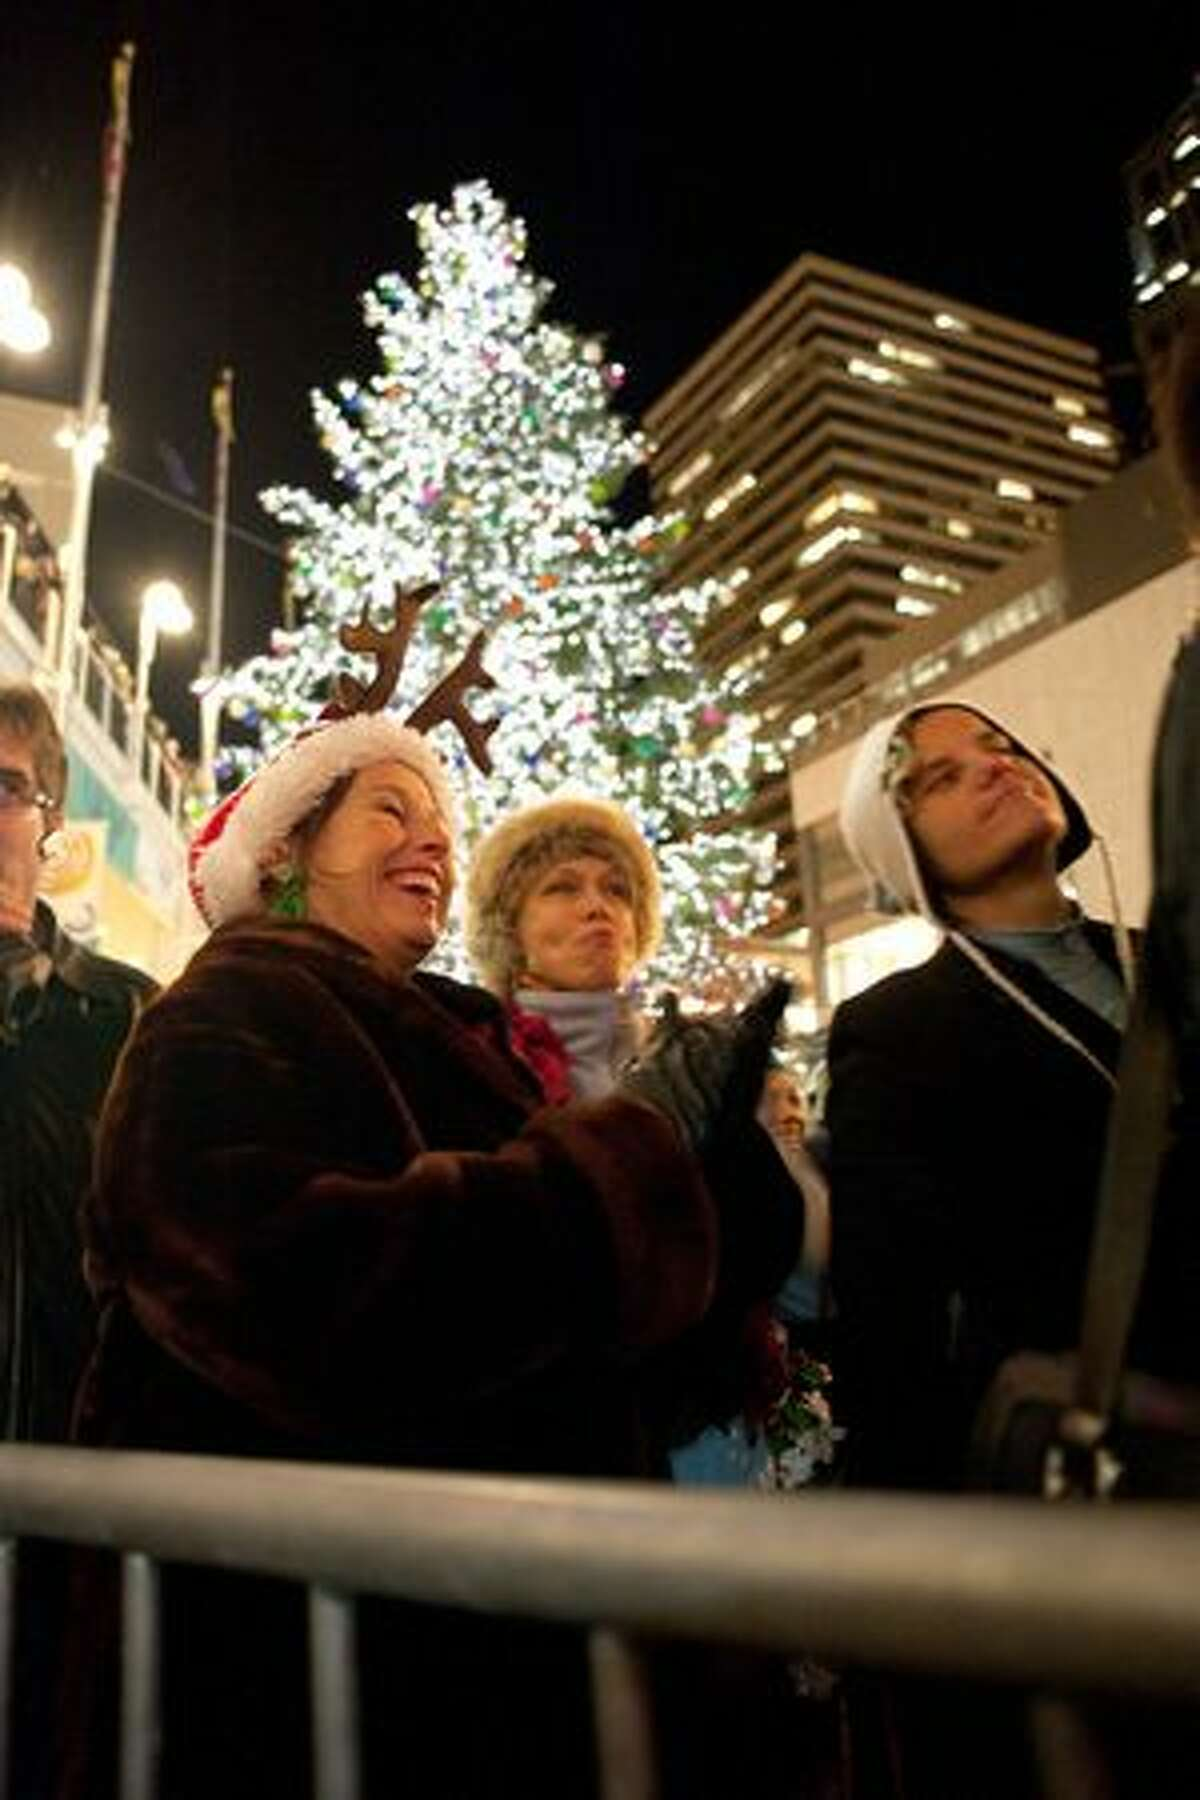 Donna Brown, left, and Wister Kay, center, share a laugh as carolers perform on stage.